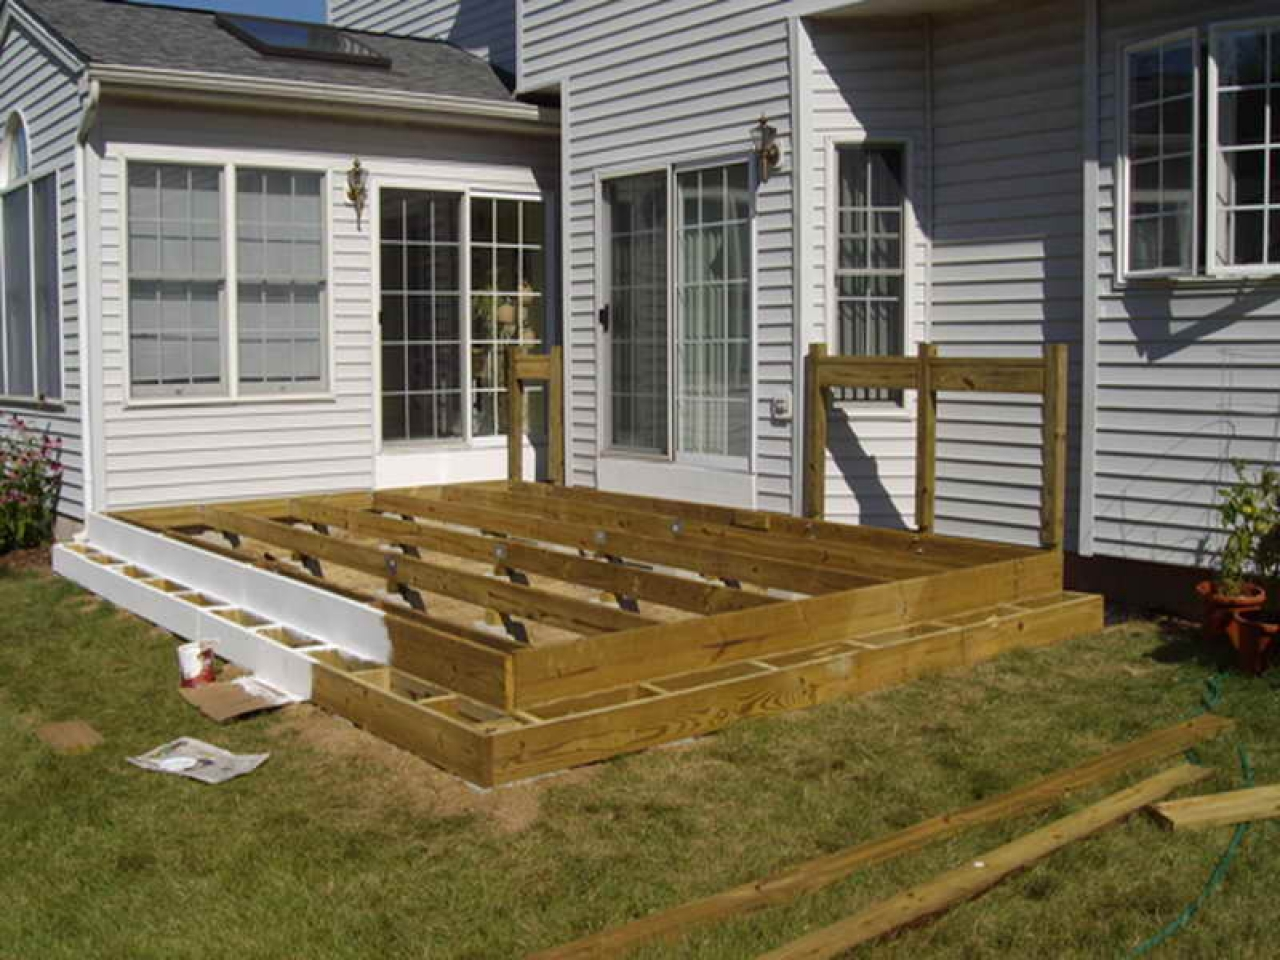 Floating Deck Plans Designs Floating Deck Against House ... on Patio Planner id=76972